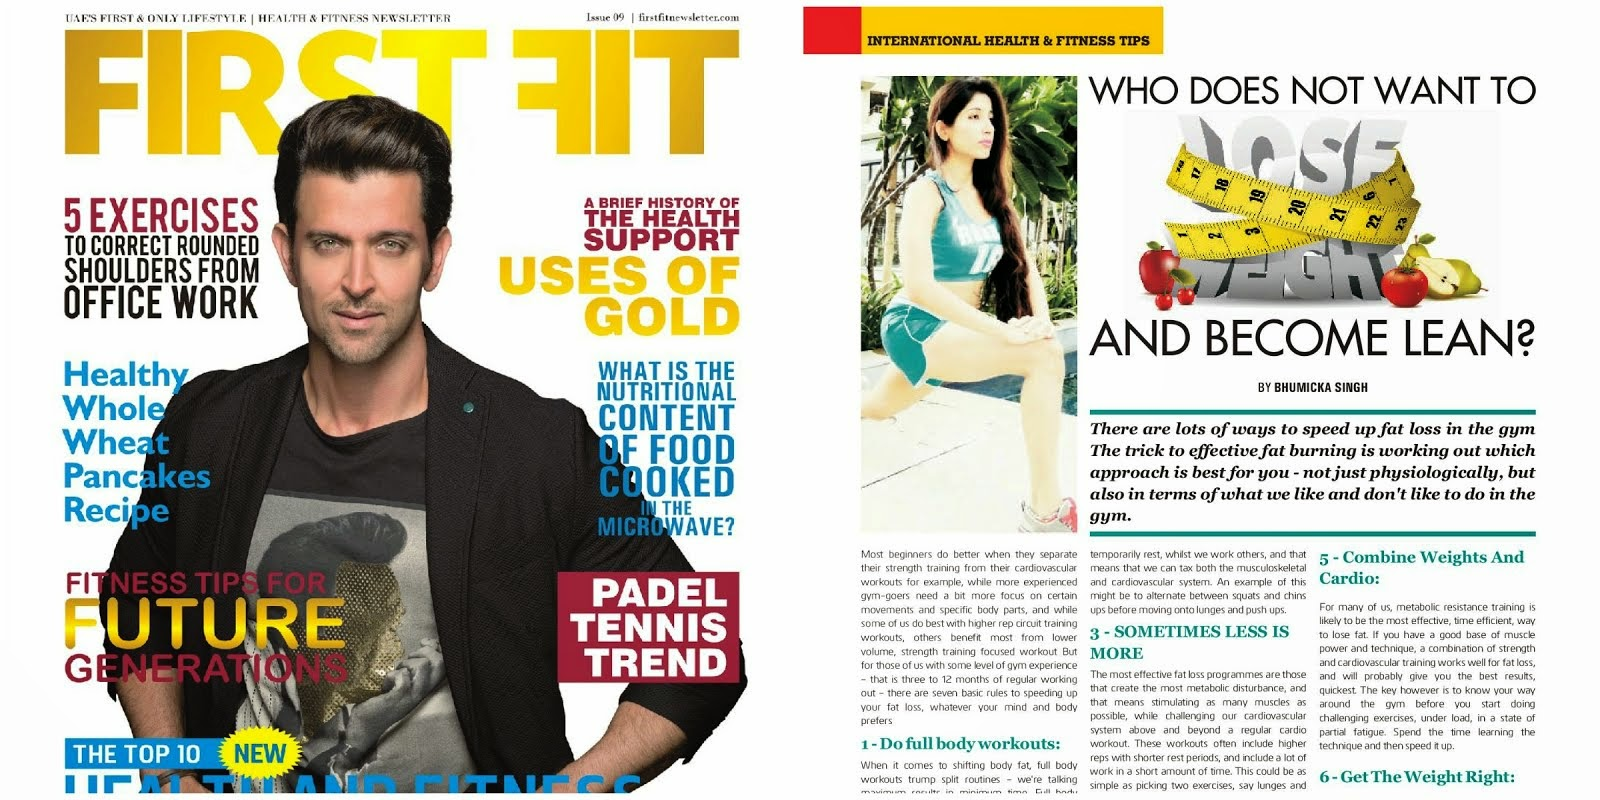 My Fitness Article Published With Hrithik Roshan On Cover Page